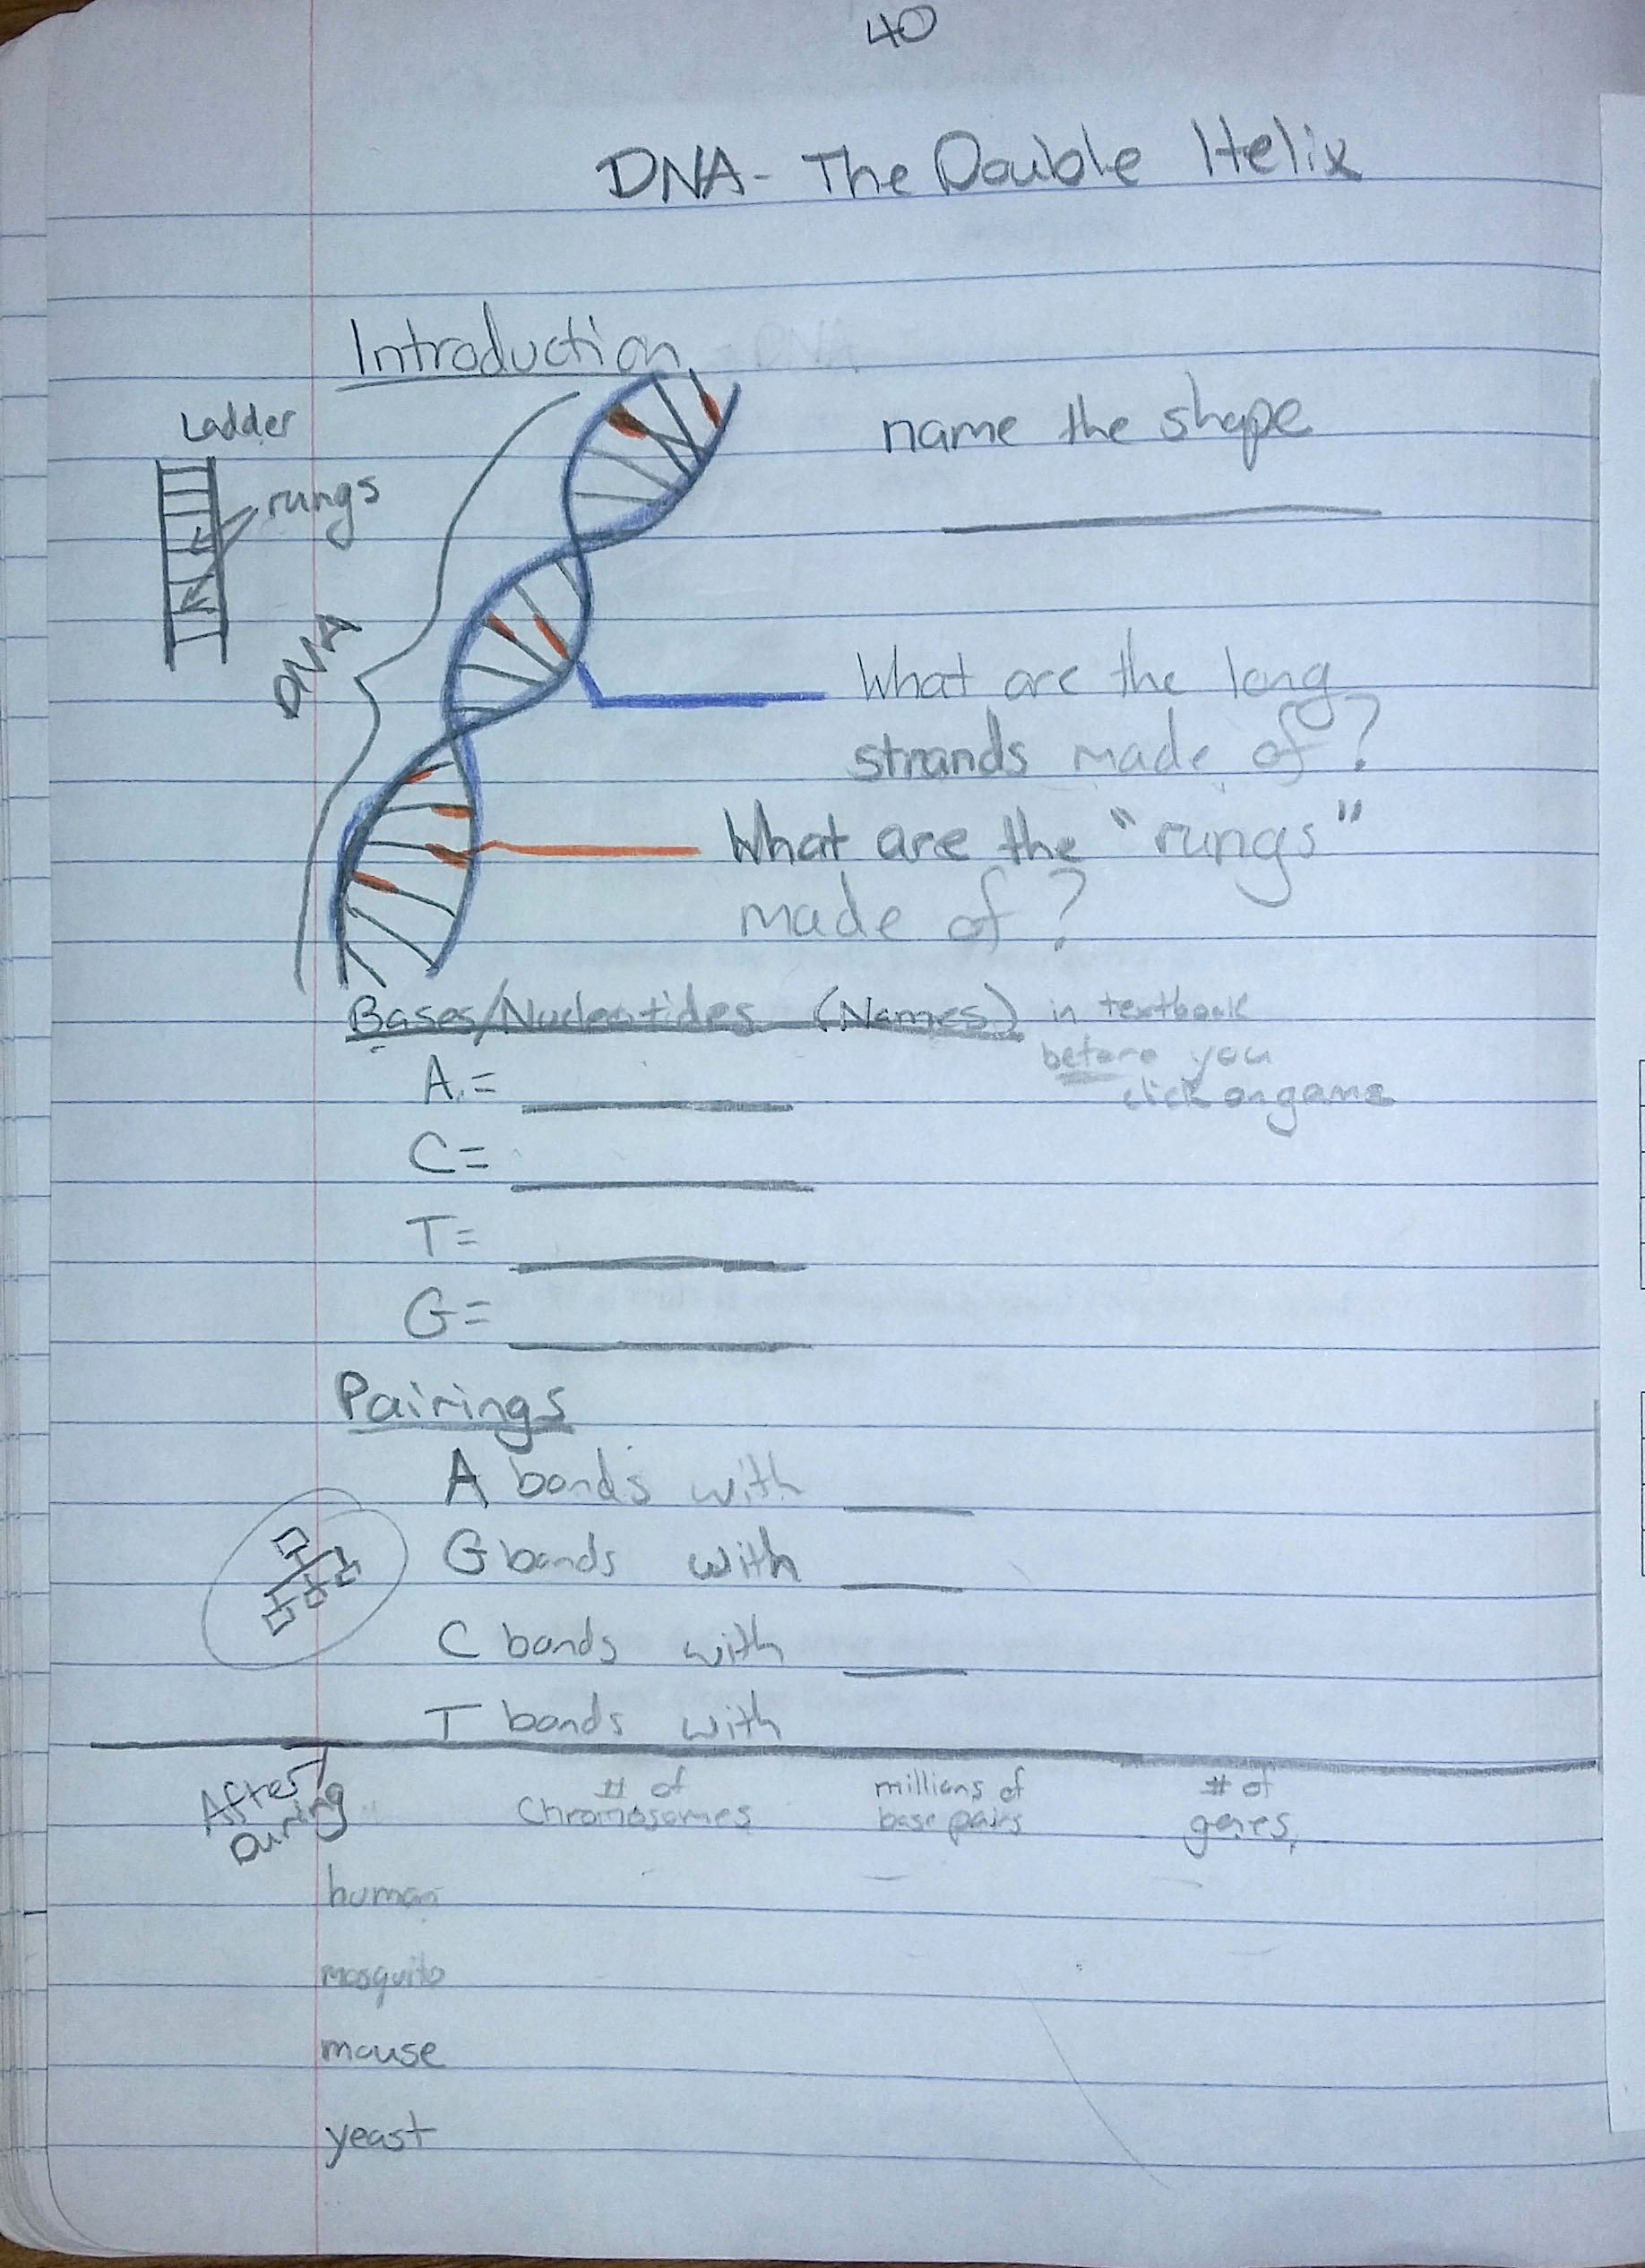 Dna the Double Helix Worksheet Lovely Armstrong Valerie Genetics